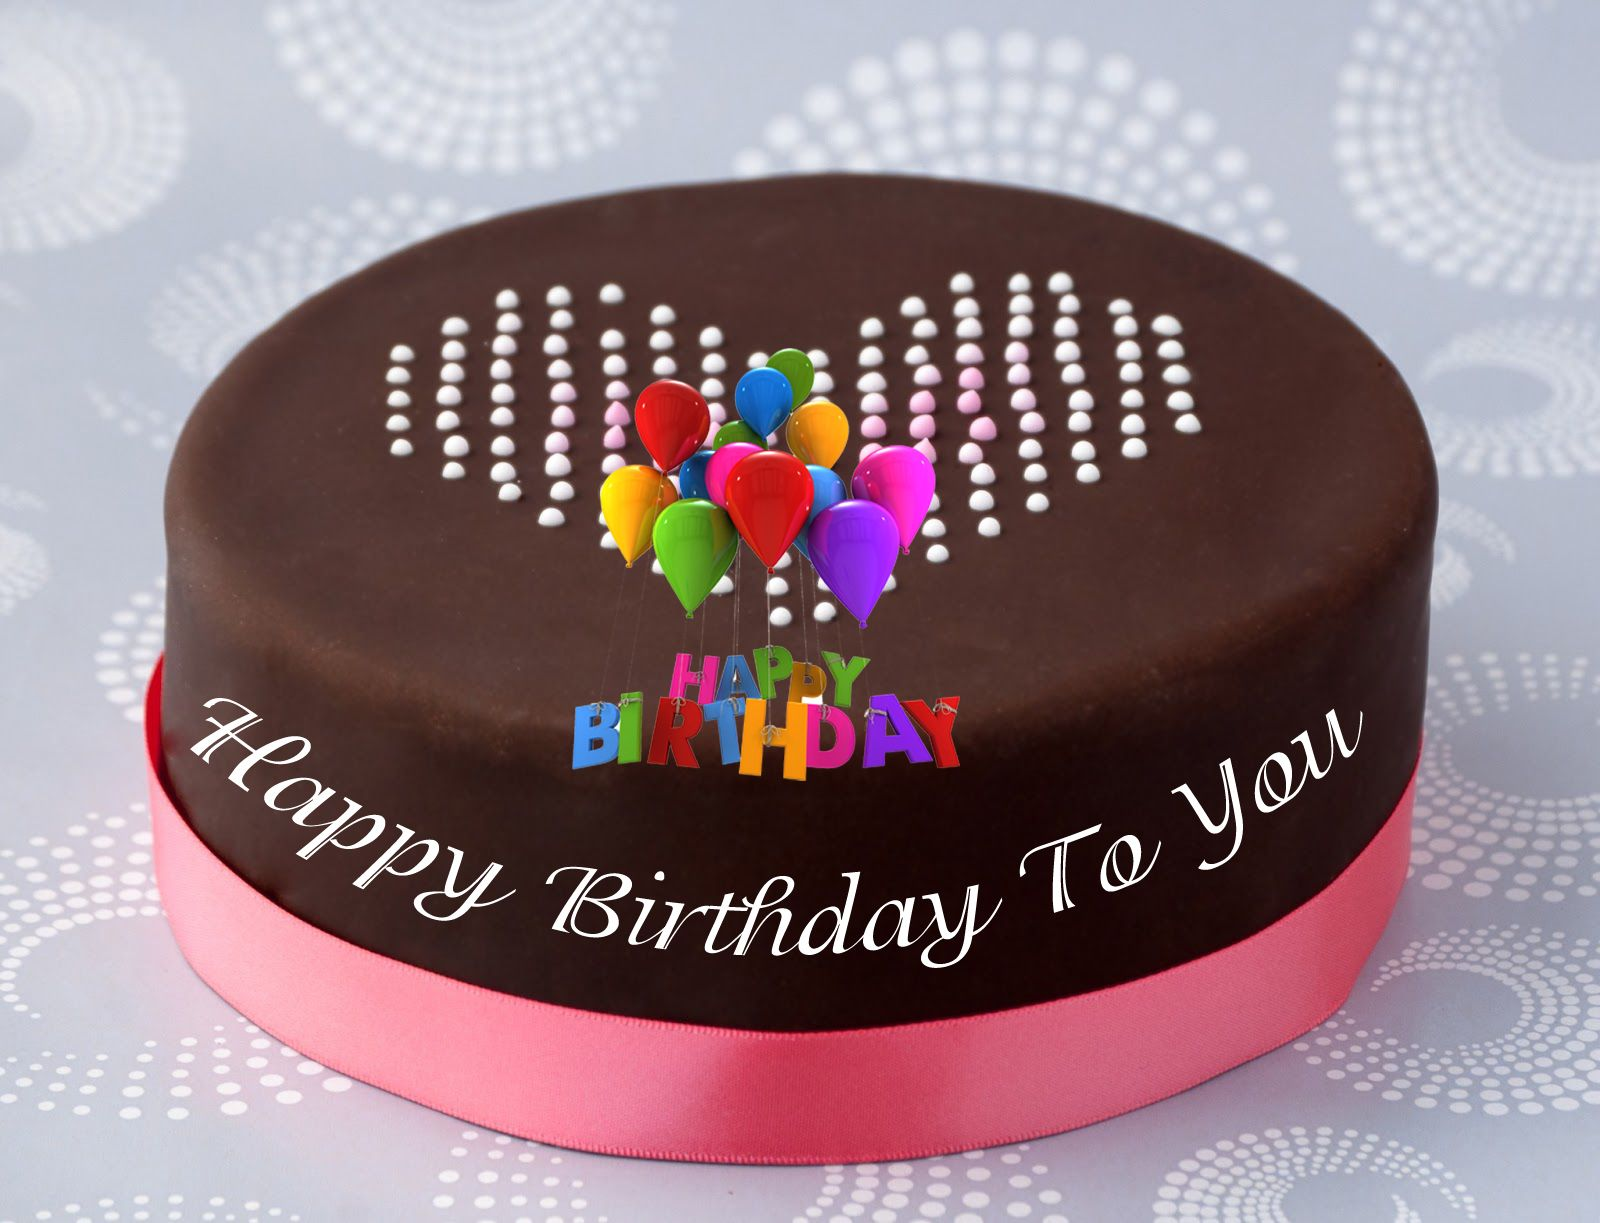 birthday wishes - Free Large Images | Places to Visit | Pinterest ...